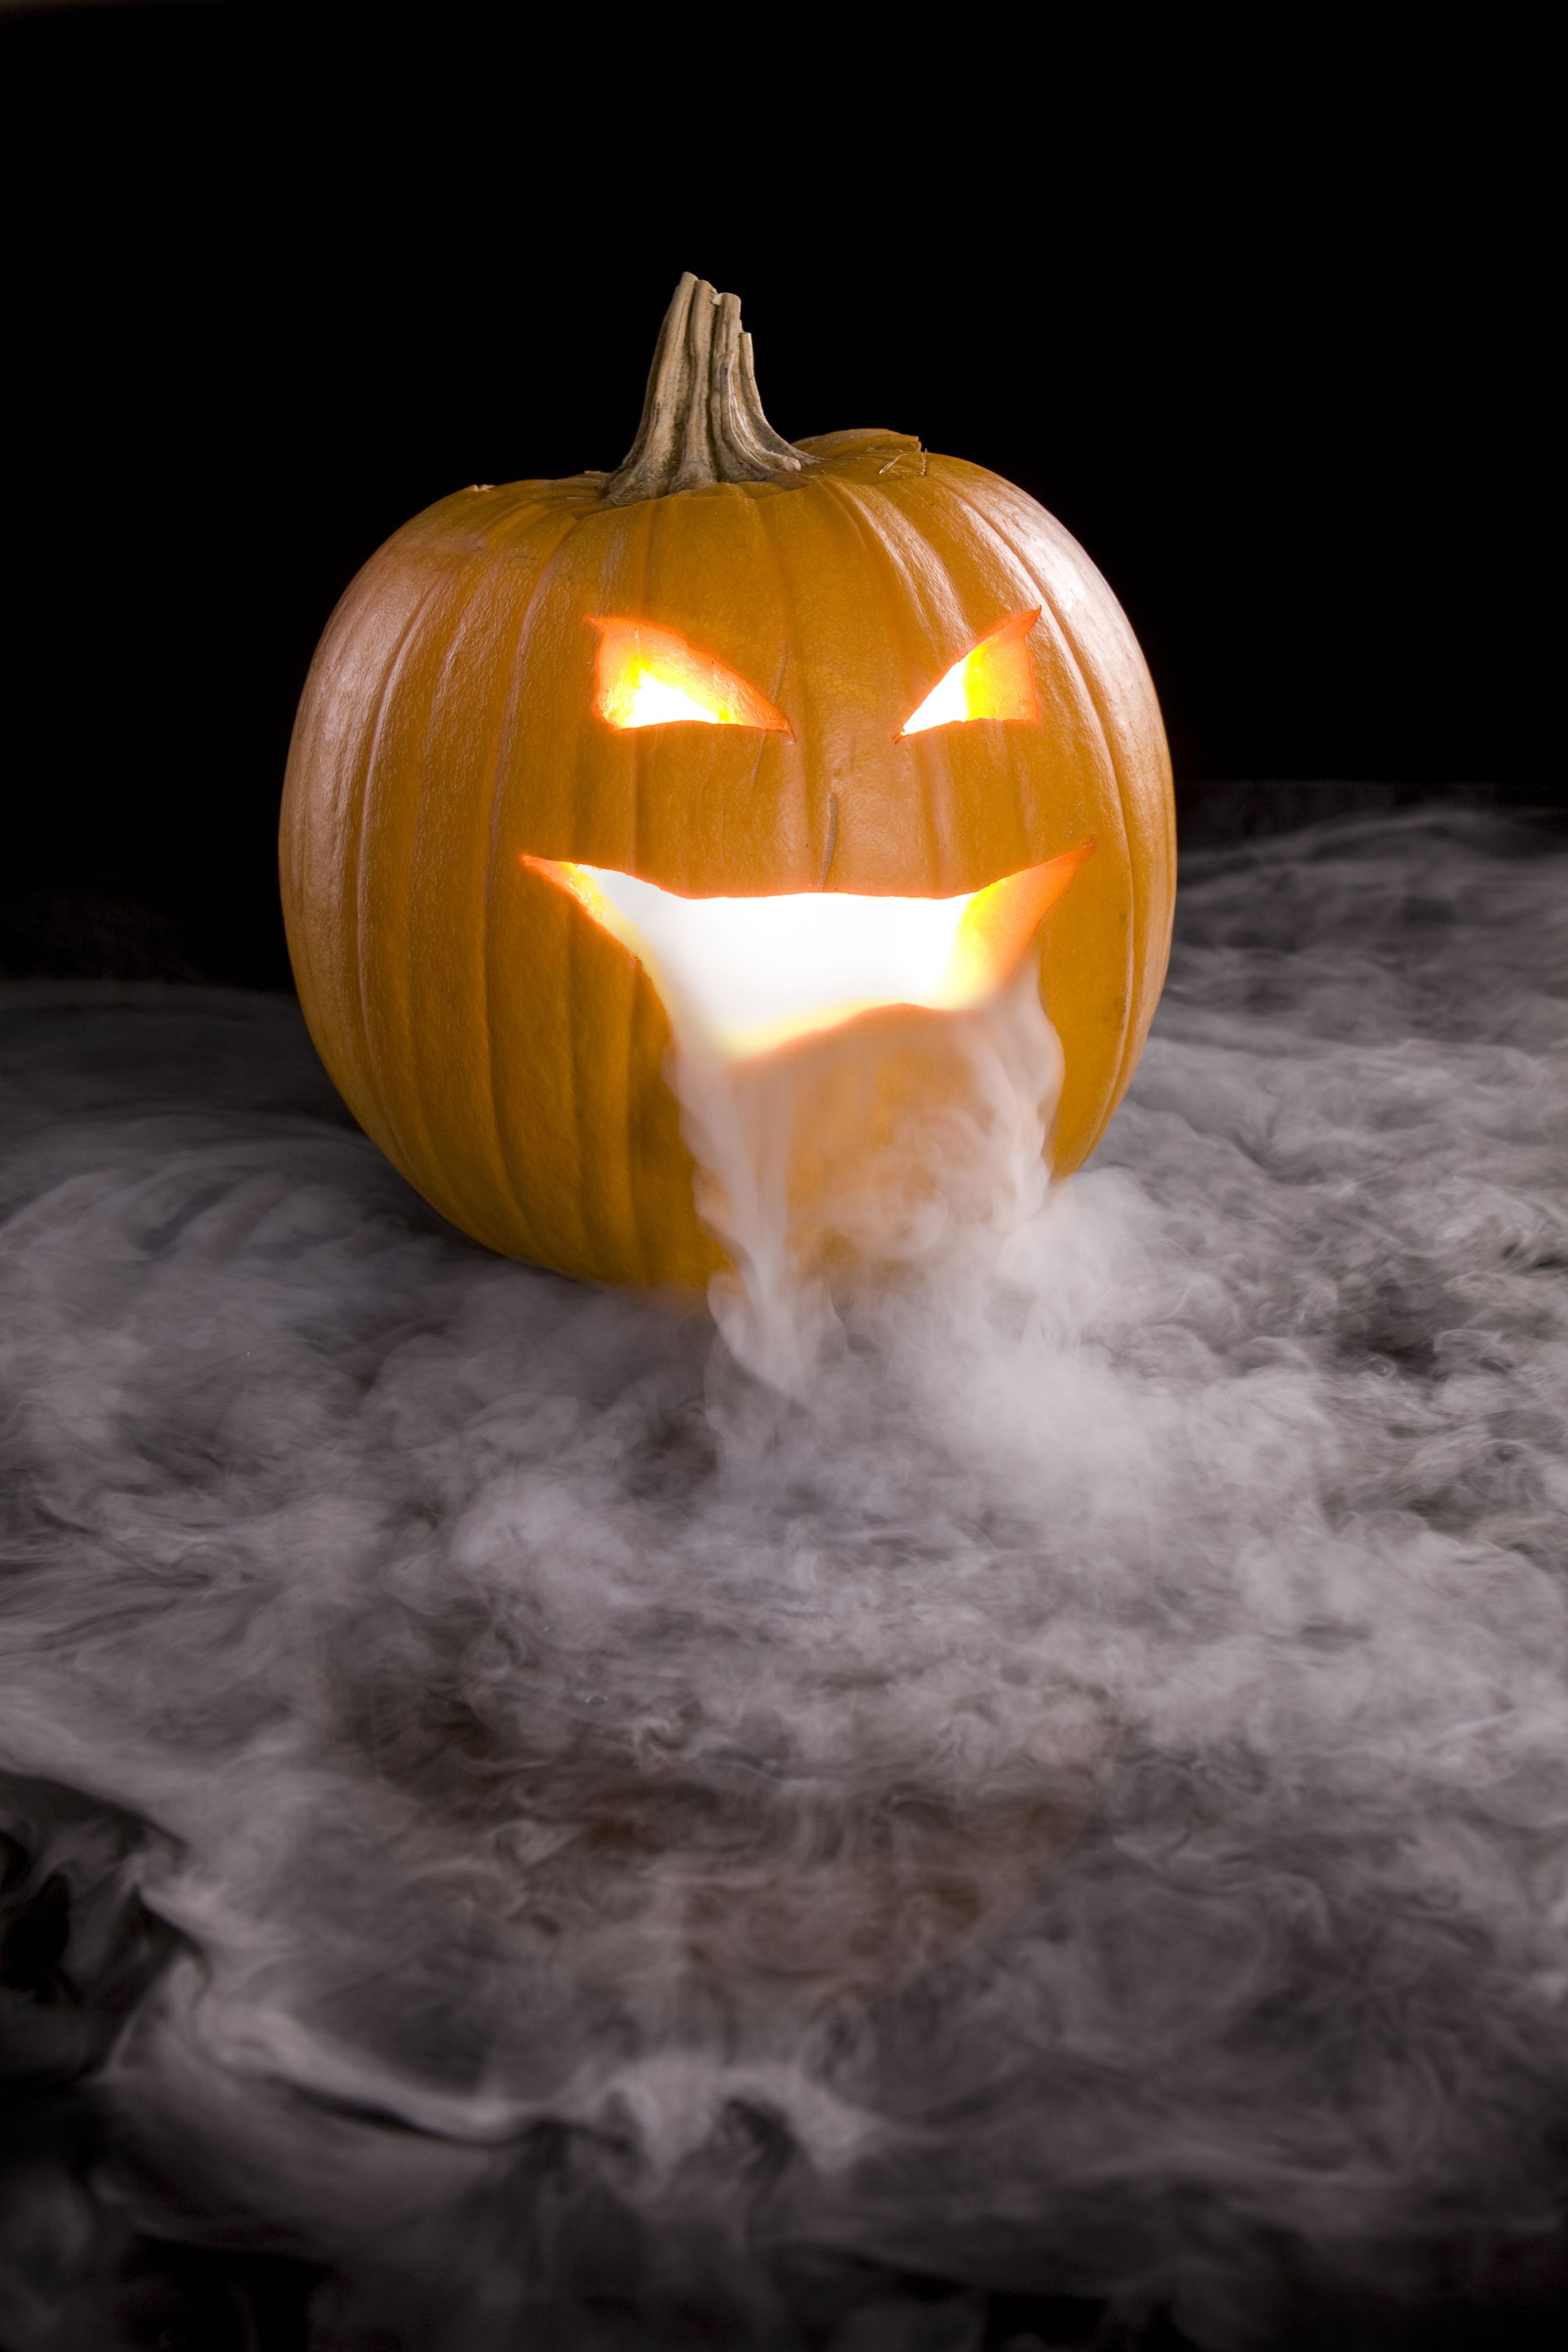 3 Of Our Favorite Ways To Use Dry Ice On Halloween Halloween Pumpkins Carvings Pumpkin Carving Creative Pumpkin Carving